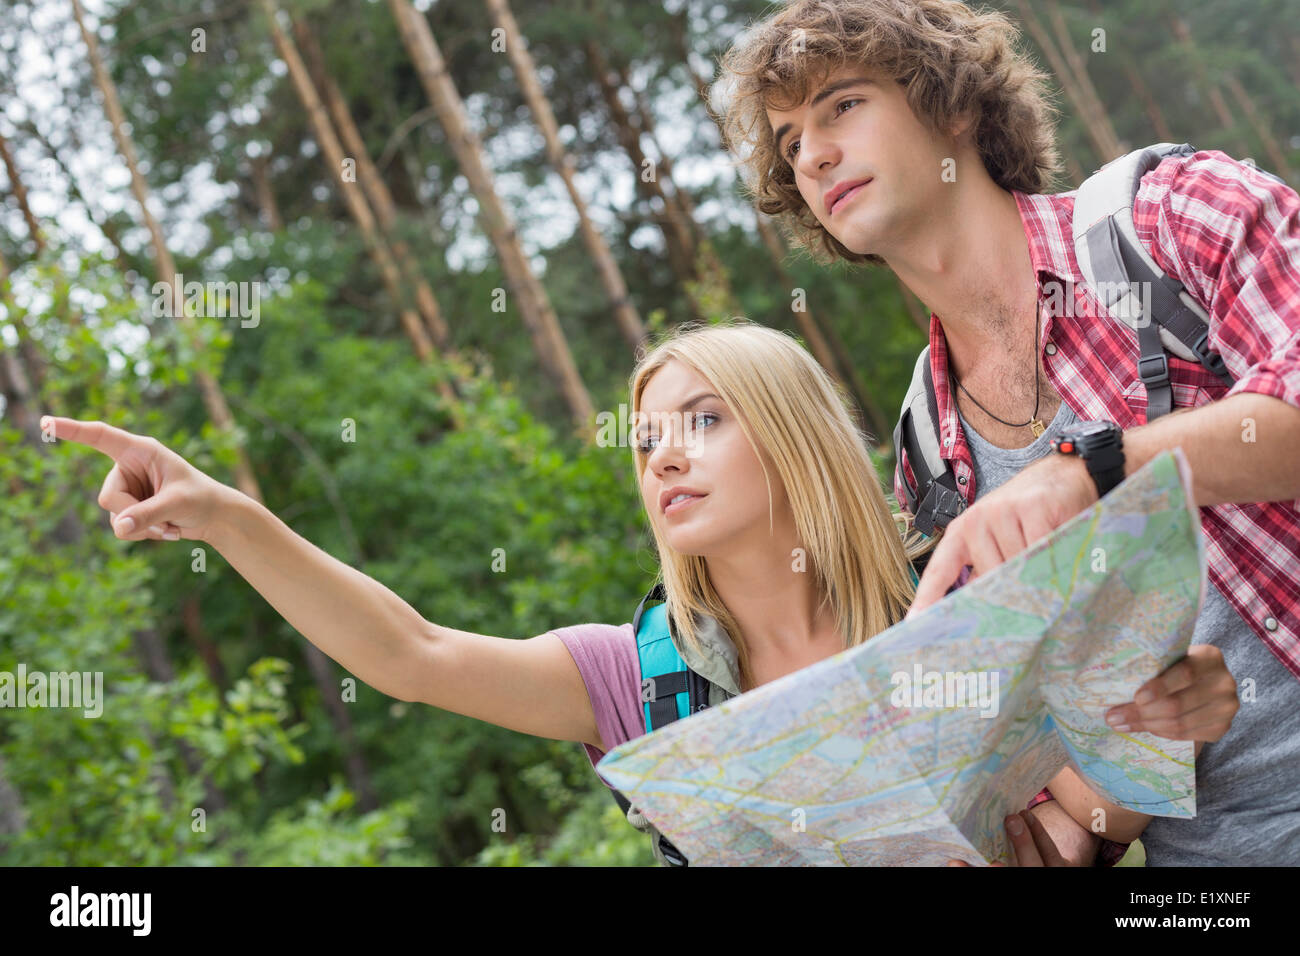 Randonnées couple with map discussing over direction in forest Photo Stock